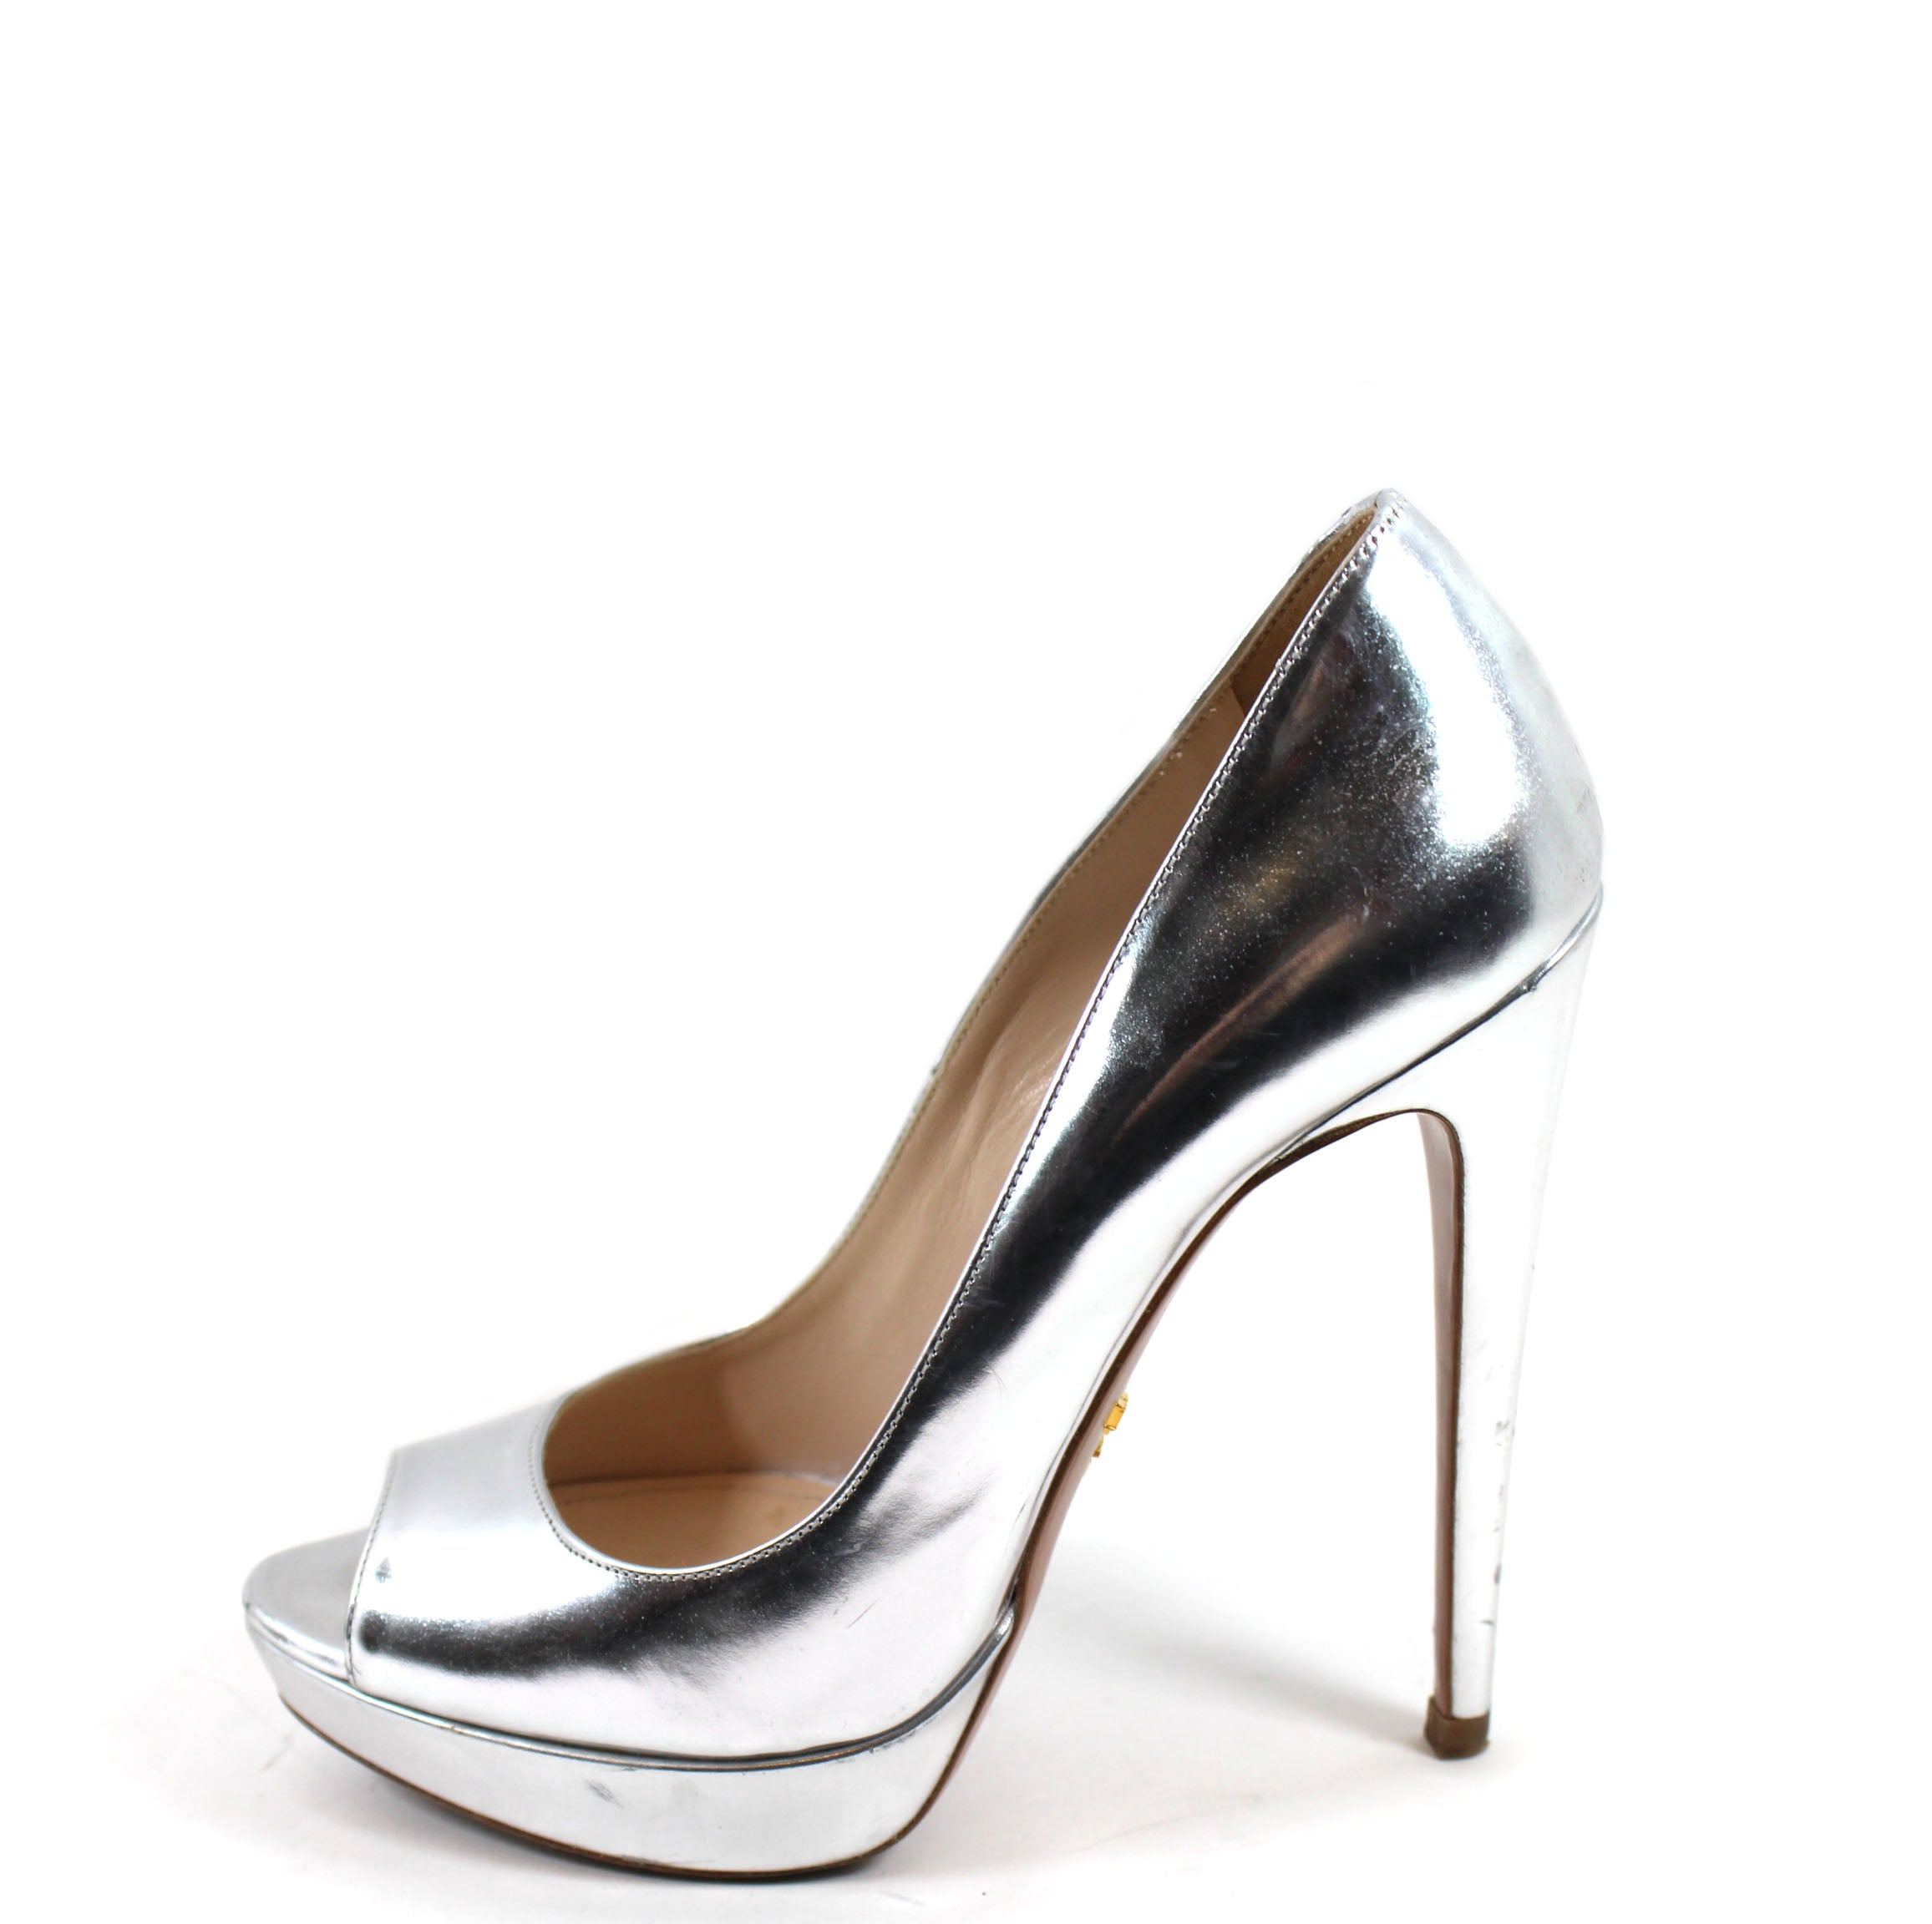 728316308c8  Sold  Prada Metallic Silver Leather Platform Heels (Size 37) – Encore  Consignment